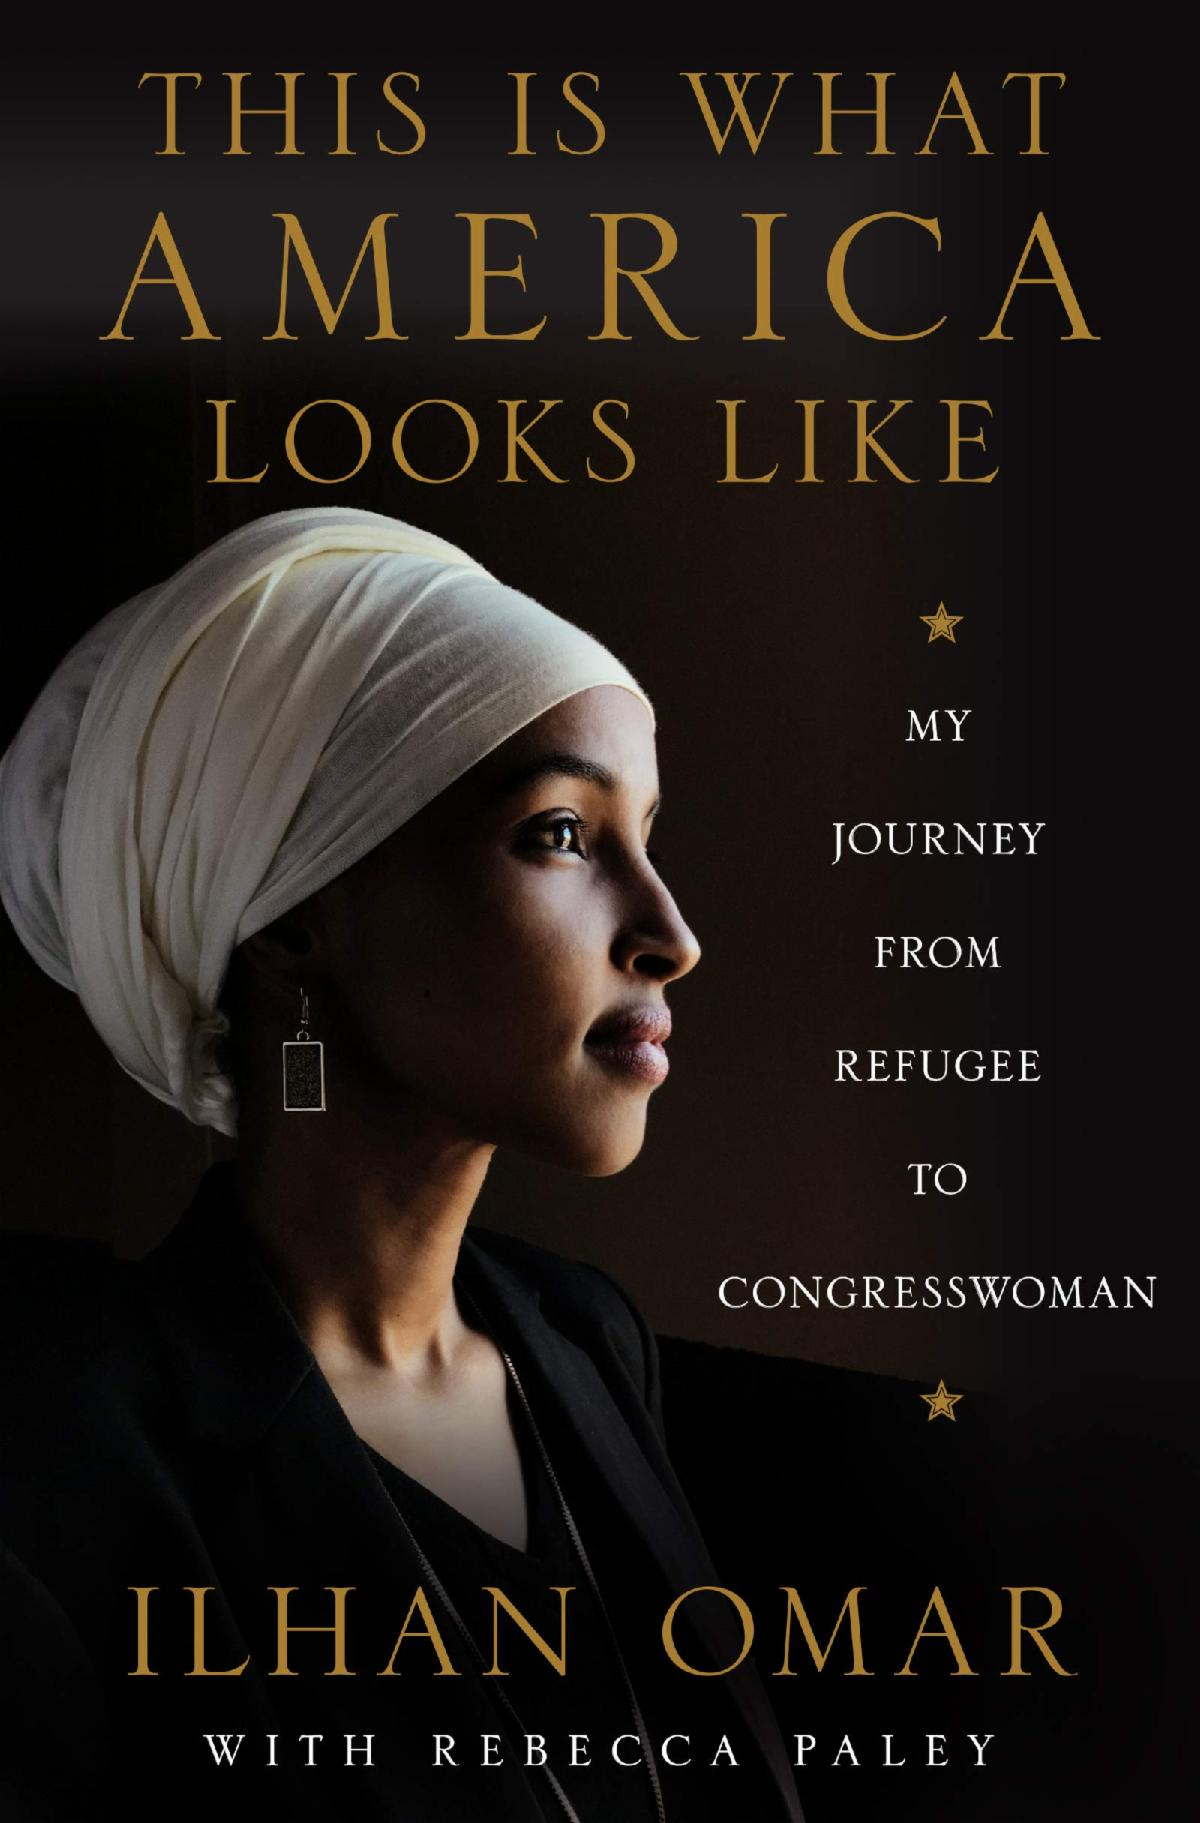 IlhanOmar Book Cover.jpg